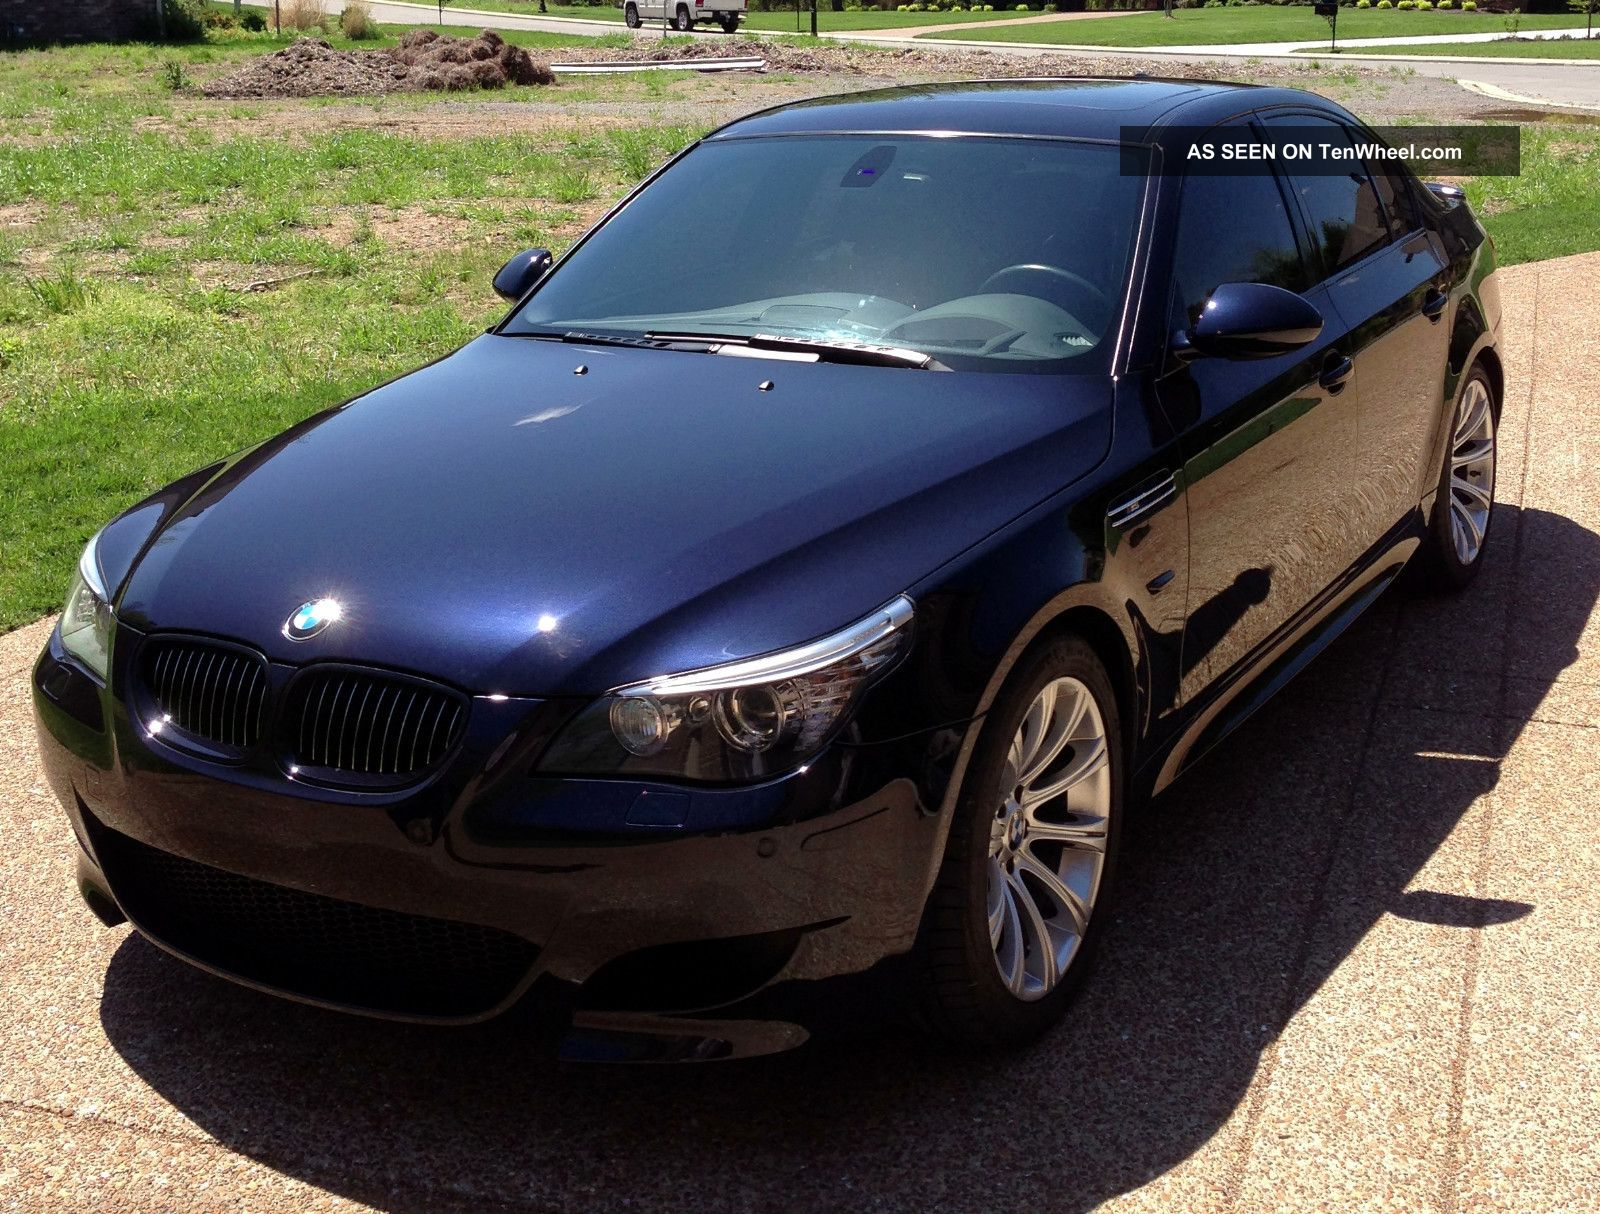 2010 Bmw M5 Base Sedan 4 Door 5 0l V 10 Carbon Black